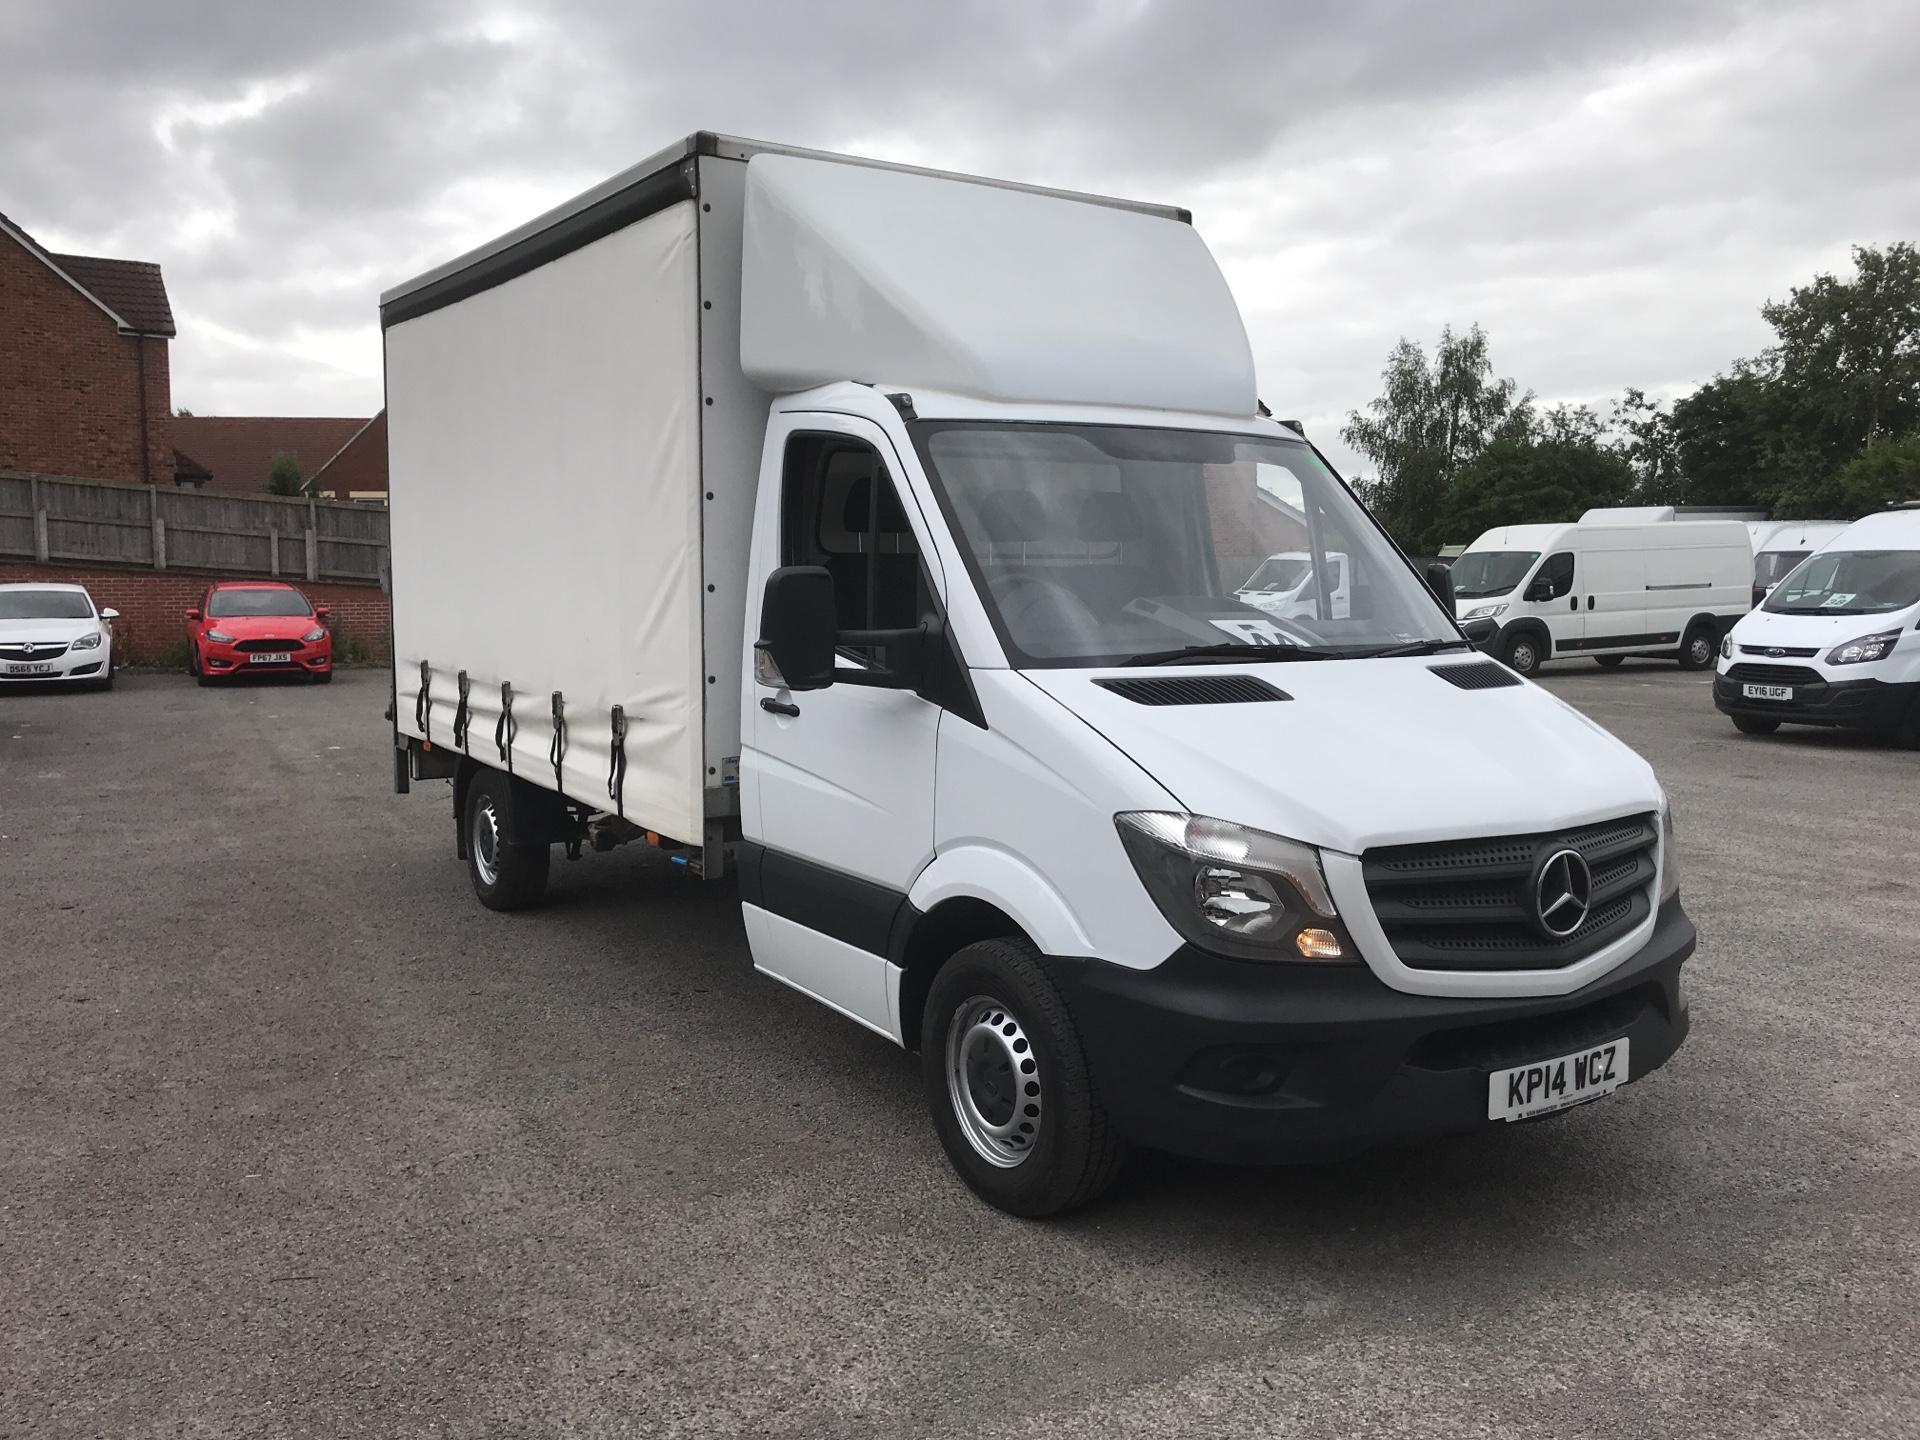 2014 Mercedes-Benz Sprinter Curtain Side With Tail Lift (KP14WCZ)